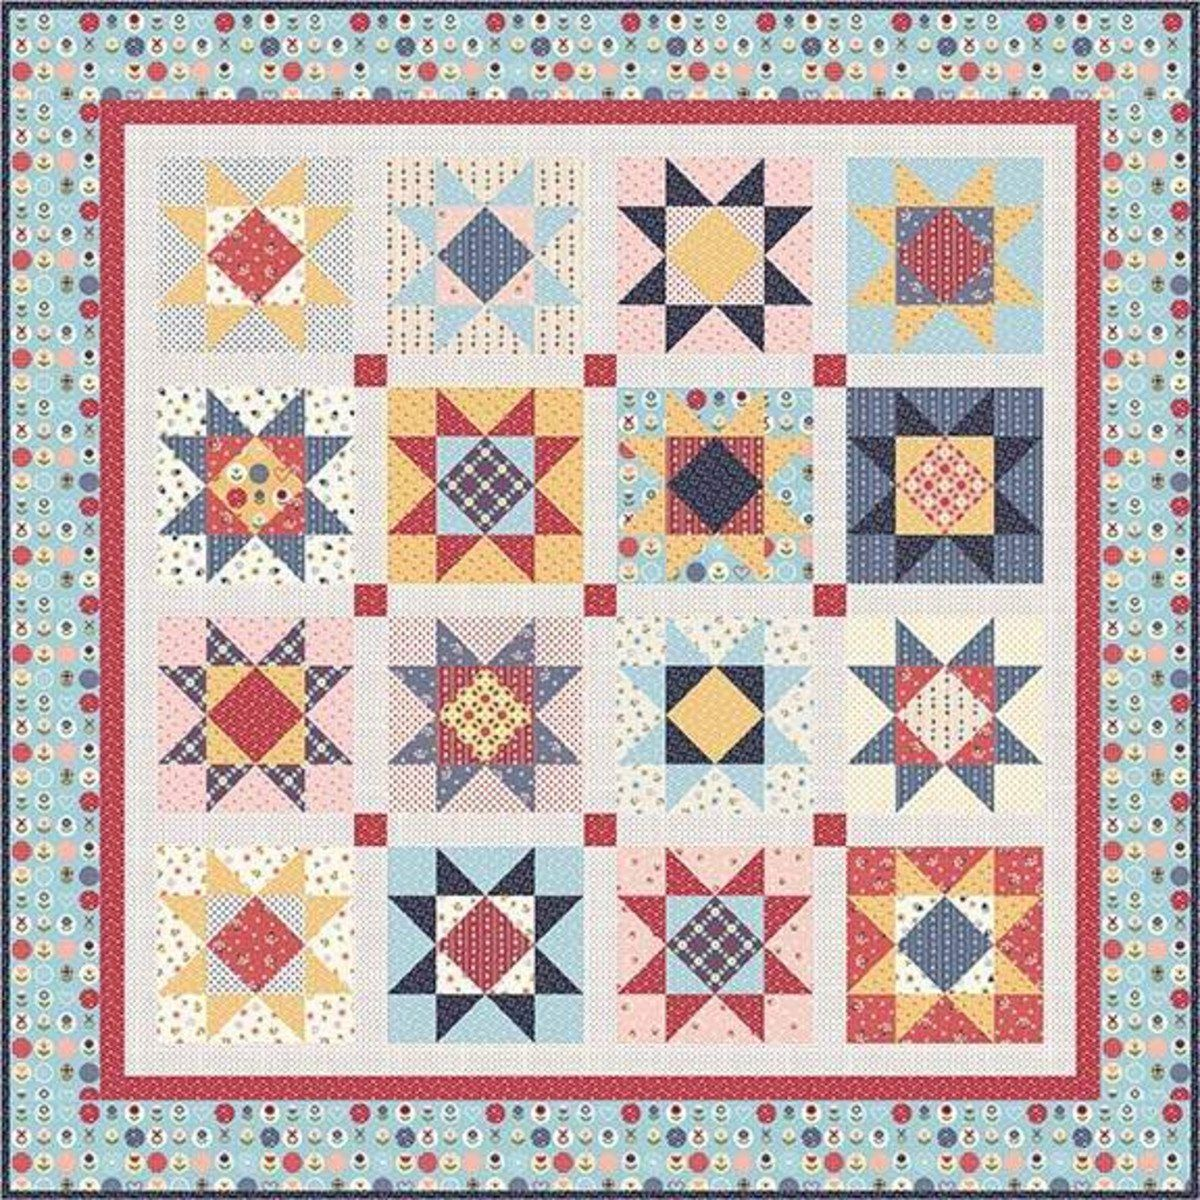 Gingham Girl Stars Quilt Pattern by Amy Smart